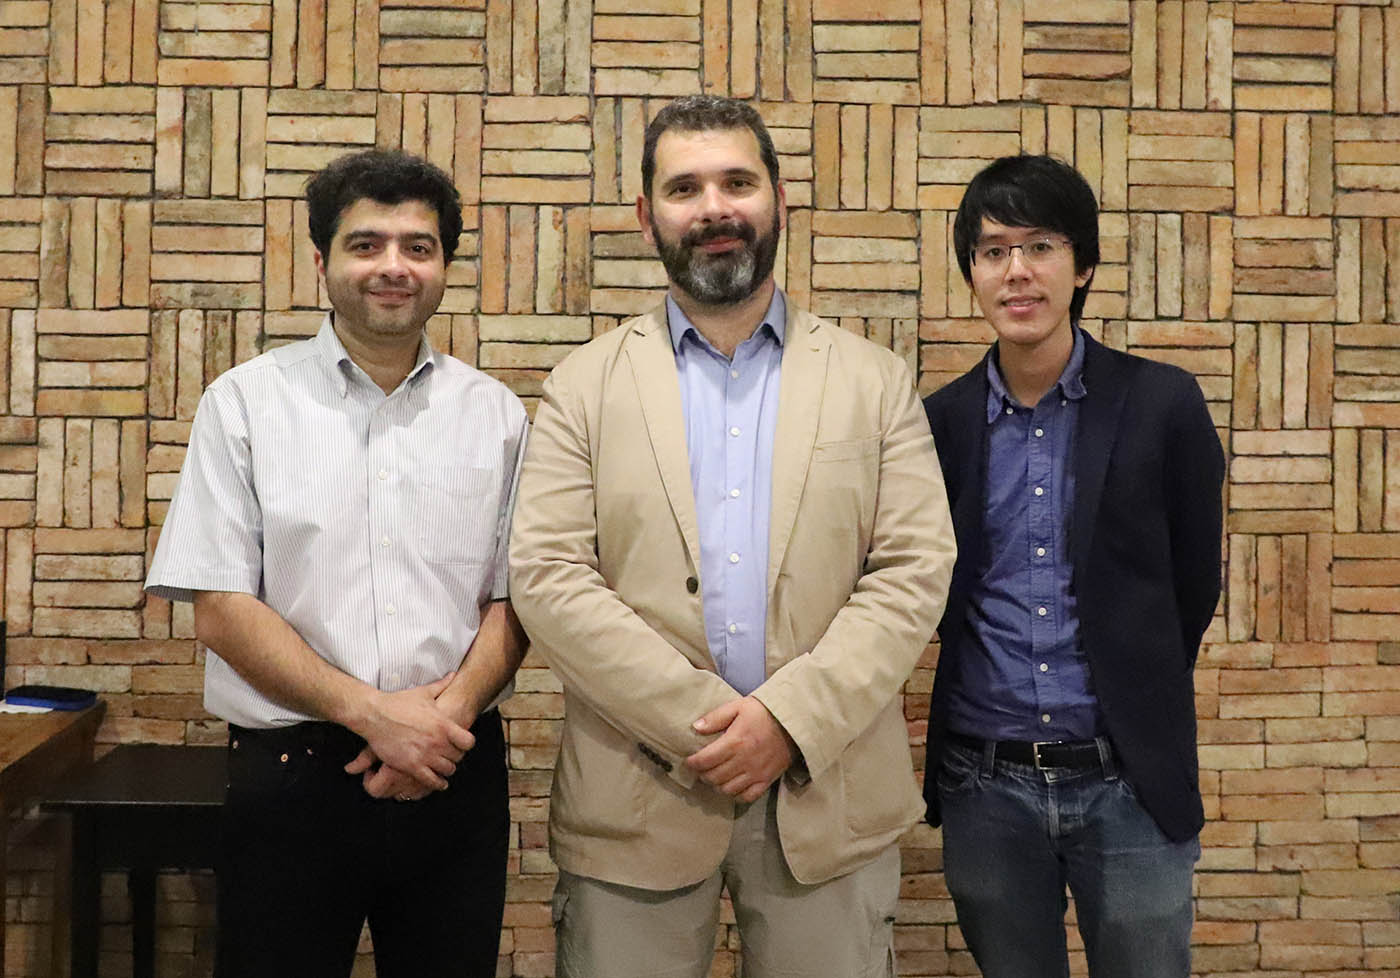 Pictured left to right Pedram Roushan, Dimitris Angelakis and Jirawat Tangpanitanon